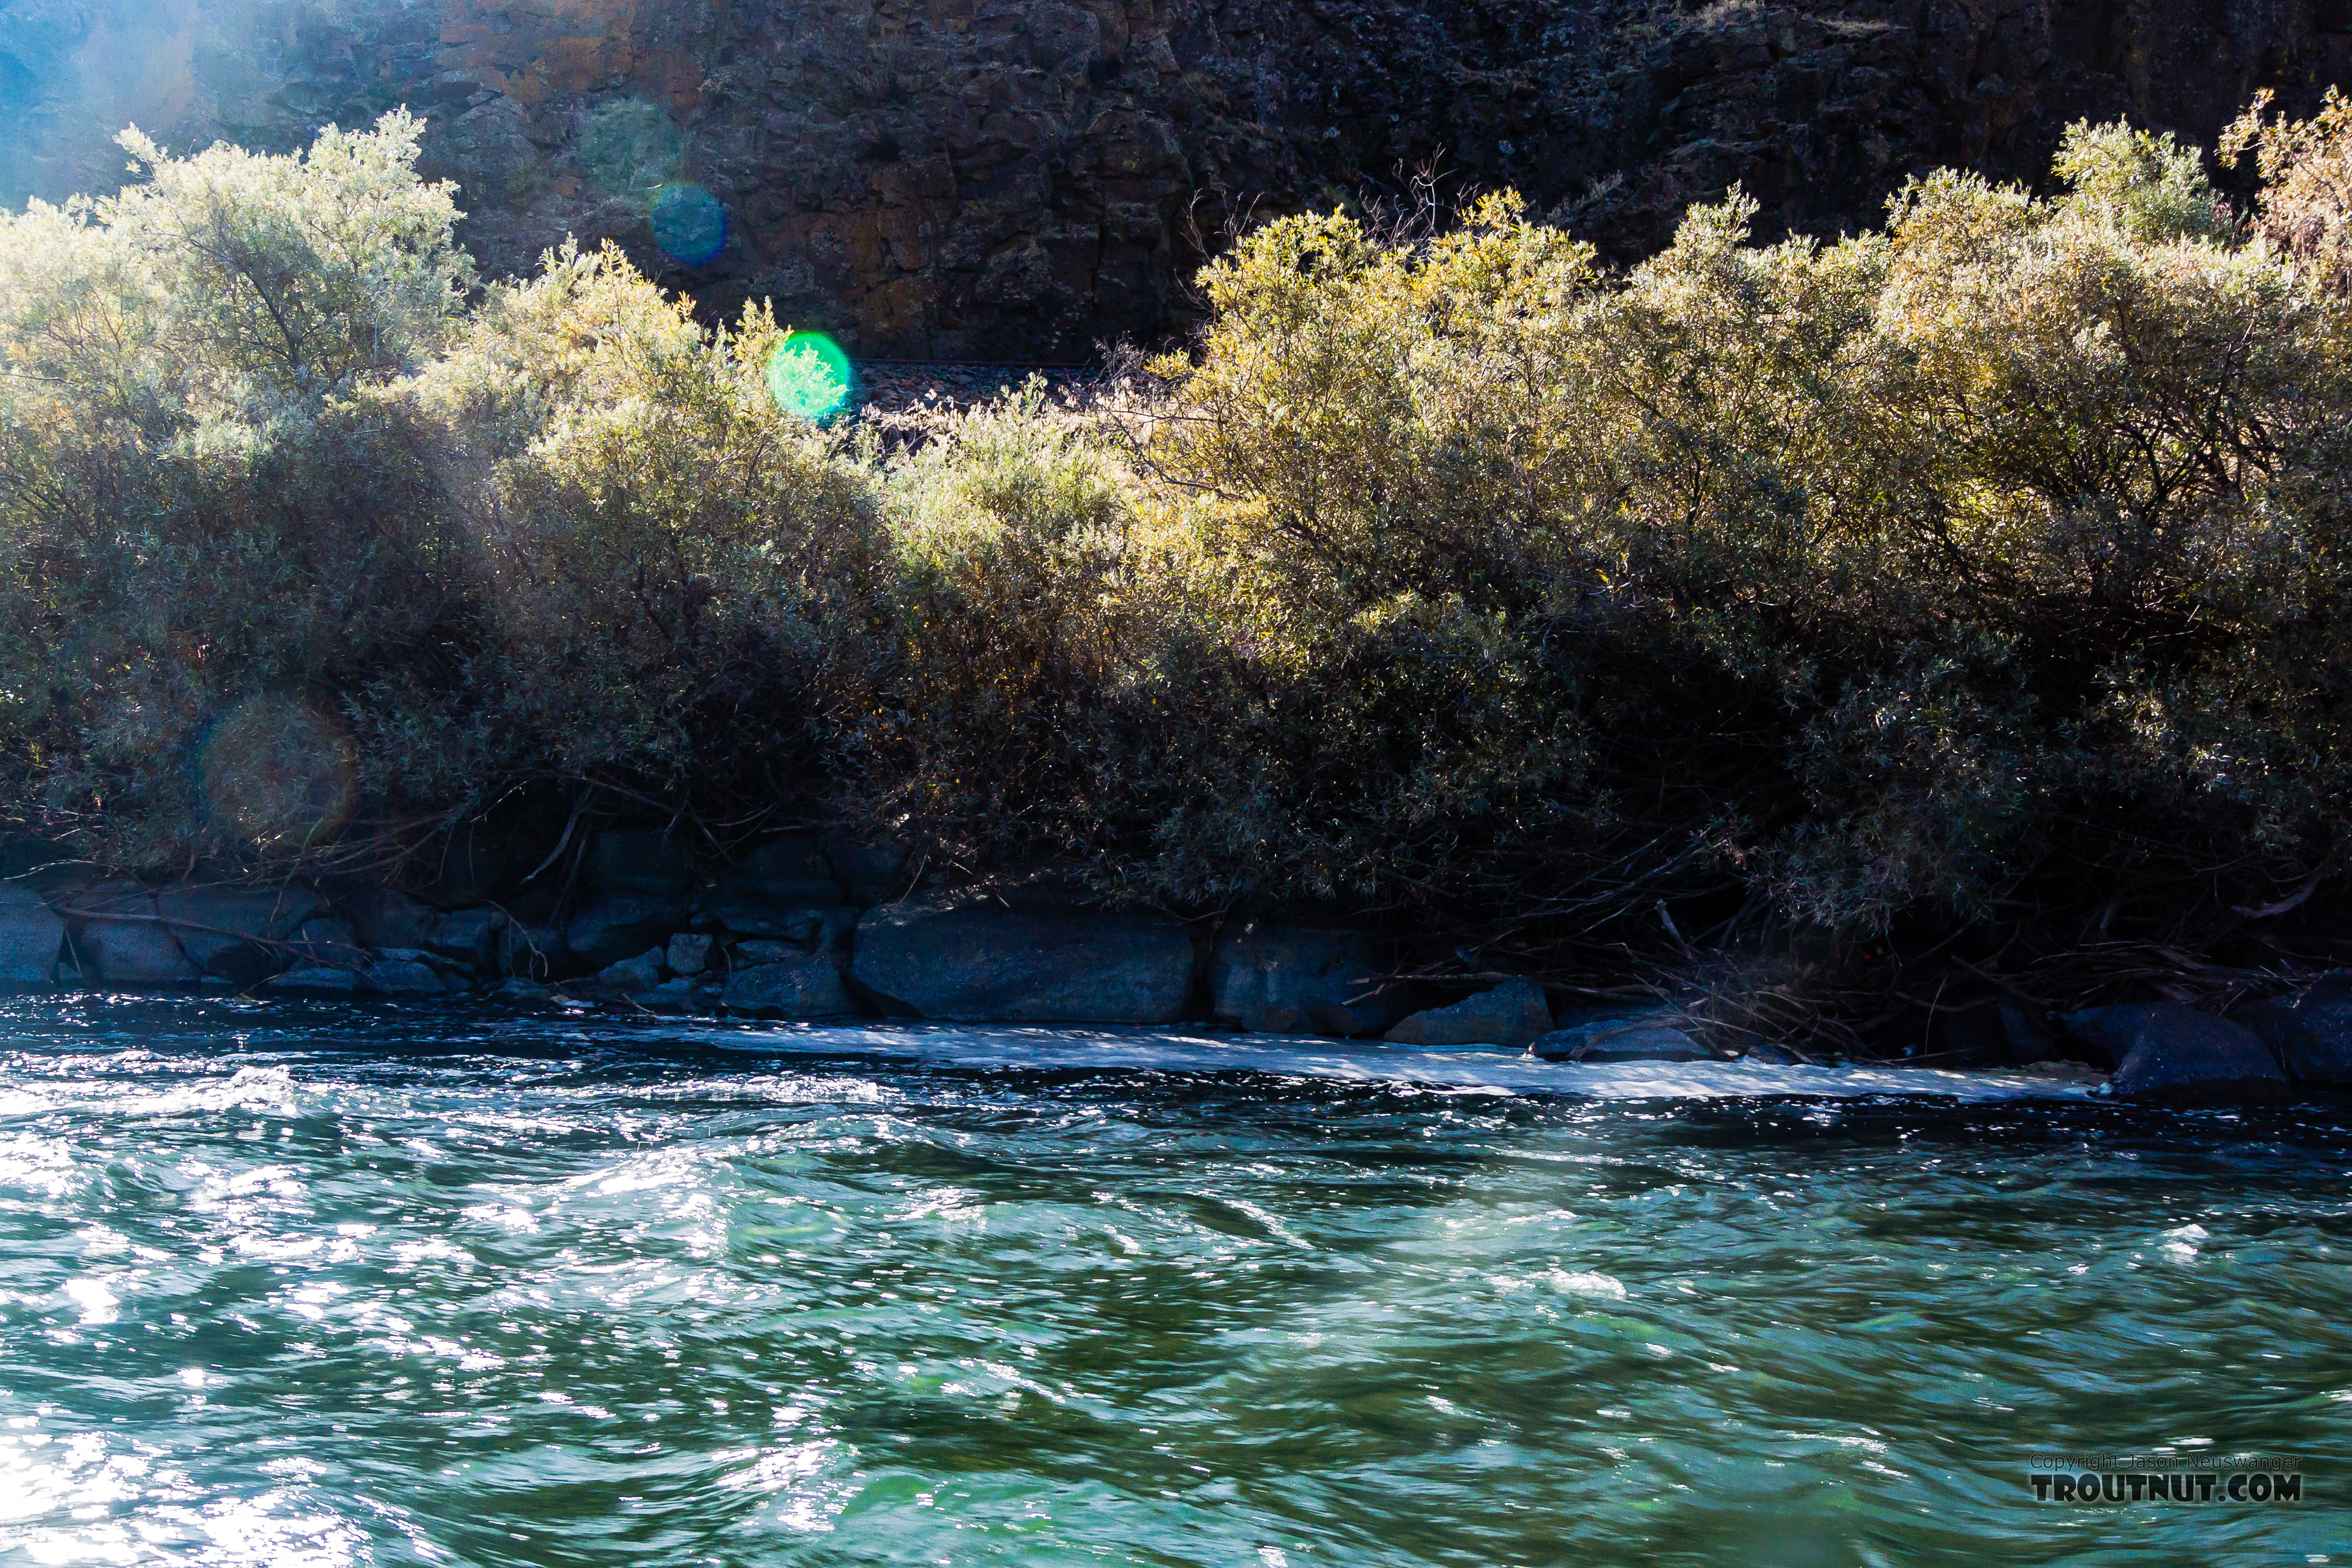 When we finally found some rising fish, they were in an almost-unapproachable foamy eddy on the far side of some fast, deep, unwadeable water that would yank on my fly soon after it hit the water. It took lots of tries with trick casts to catch a few rainbows here. From the Yakima River in Washington.